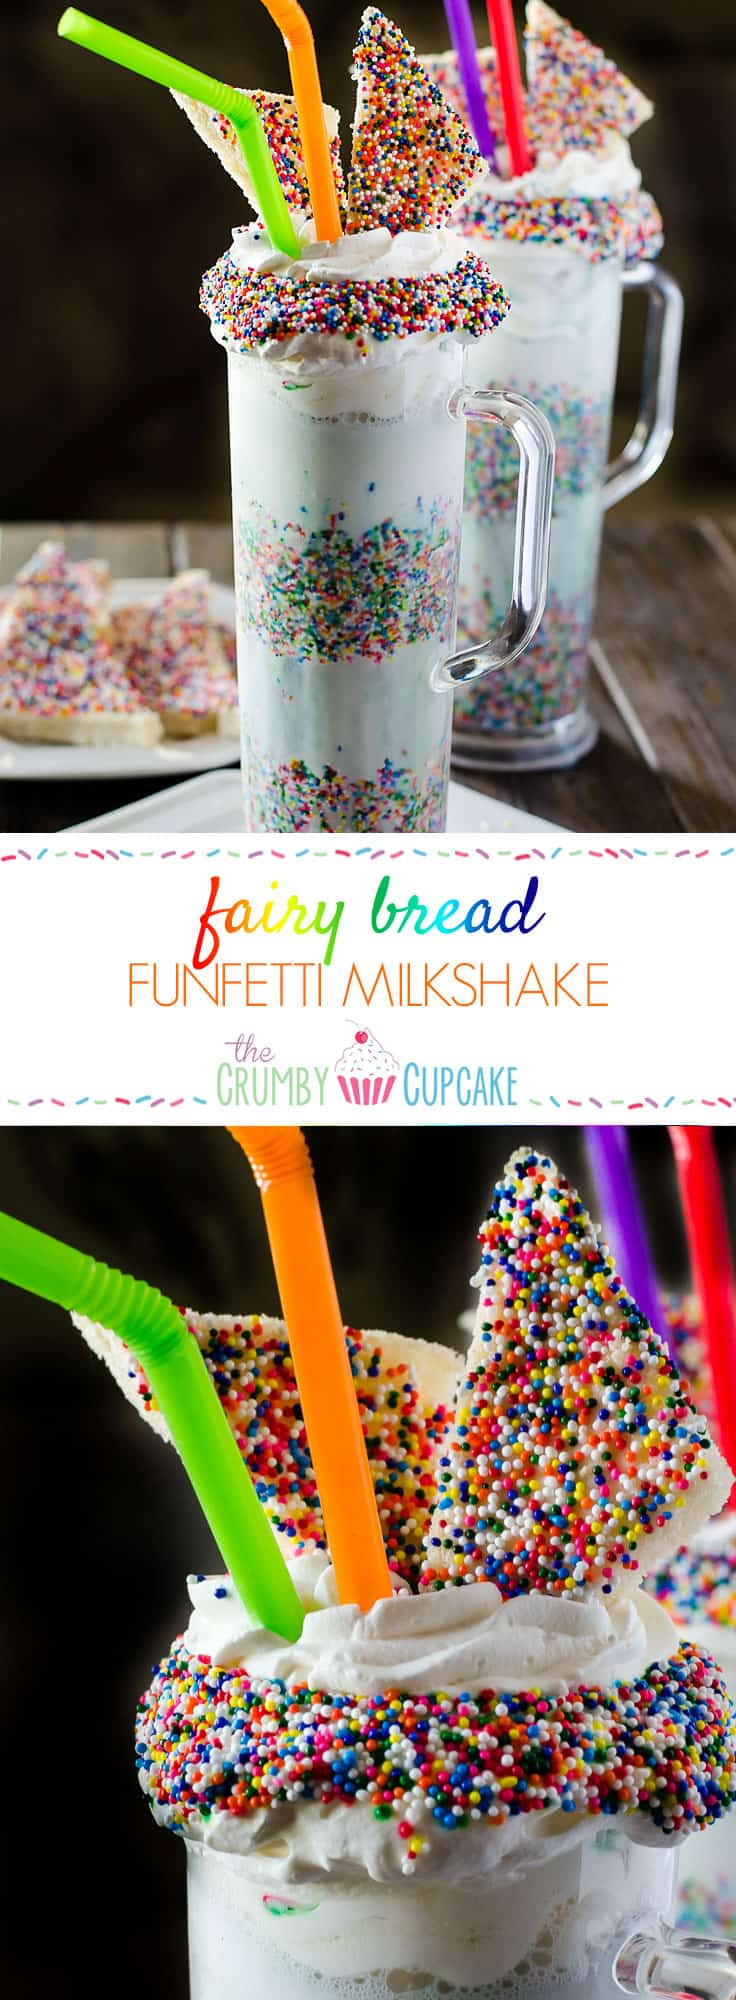 This Fairy Bread Funfetti Milkshake is bound to be a new after school favorite! Dress up those simple vanilla milkshakes with a mountain of whipped cream, tons of sprinkles, and some mini Fairy Bread slices!